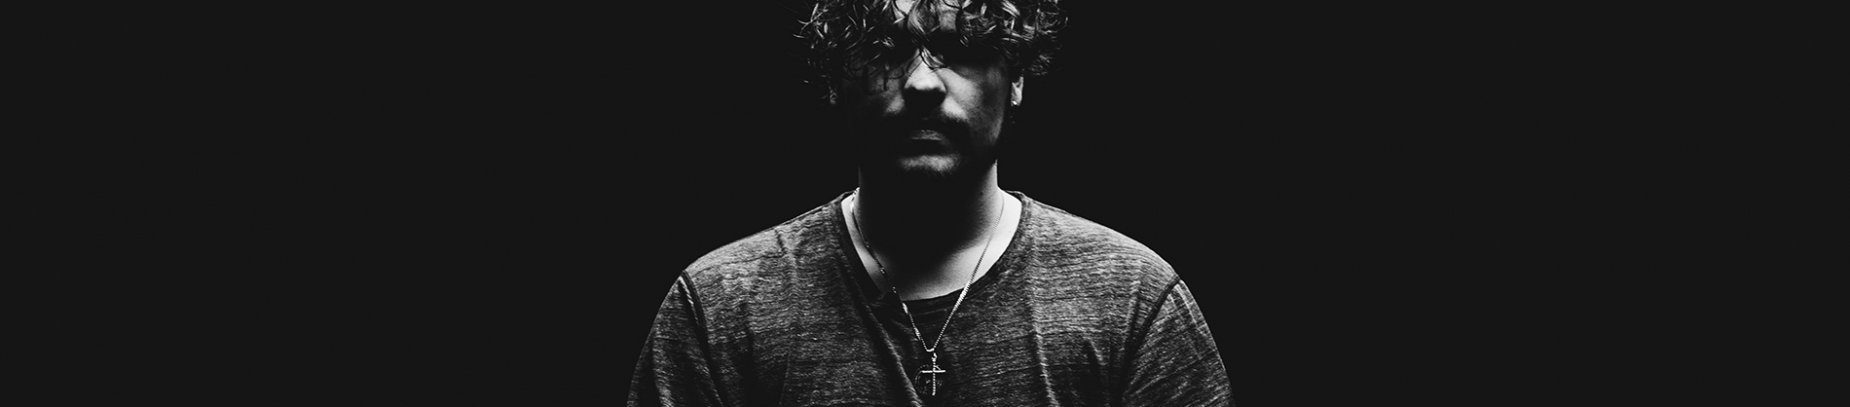 A black and white photo of a guy wearing a cross necklace looking hopeless